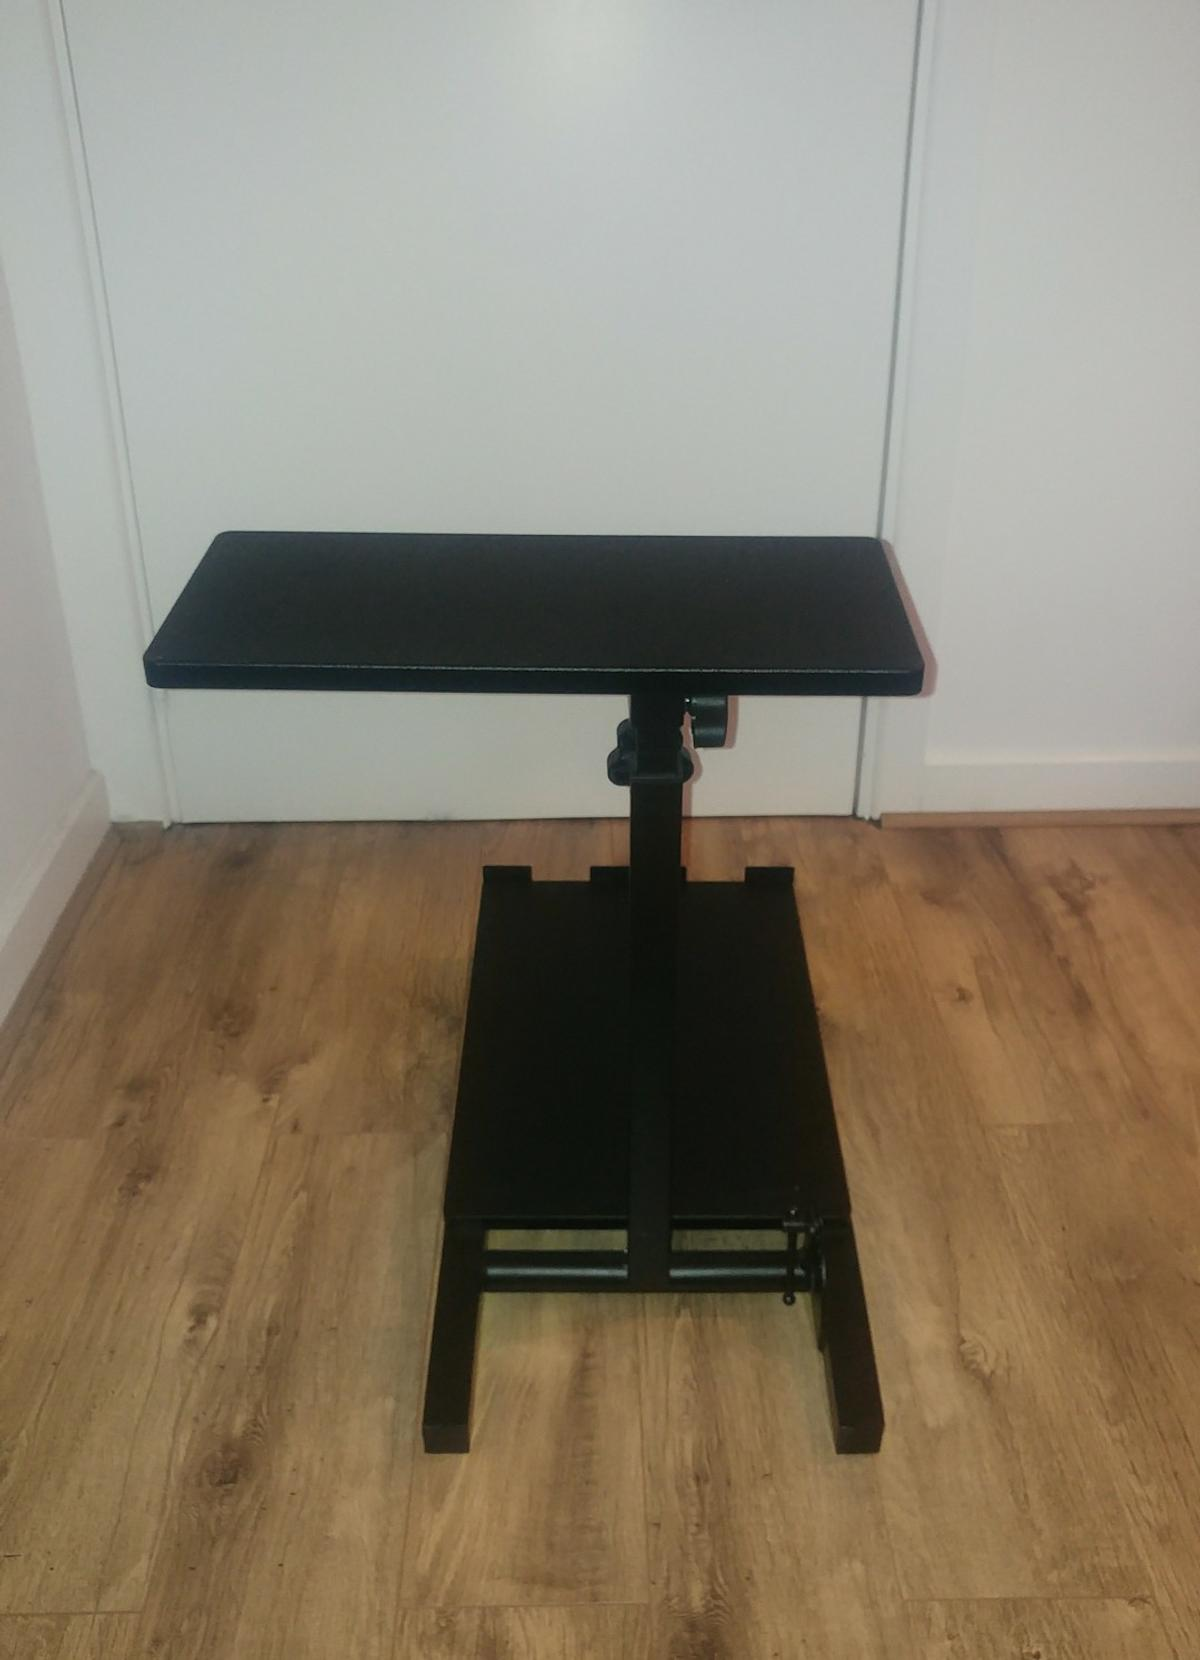 Steering Wheel Stand Ps4 Xbox Playstation In Da1 Dartford For 50 00 For Sale Shpock